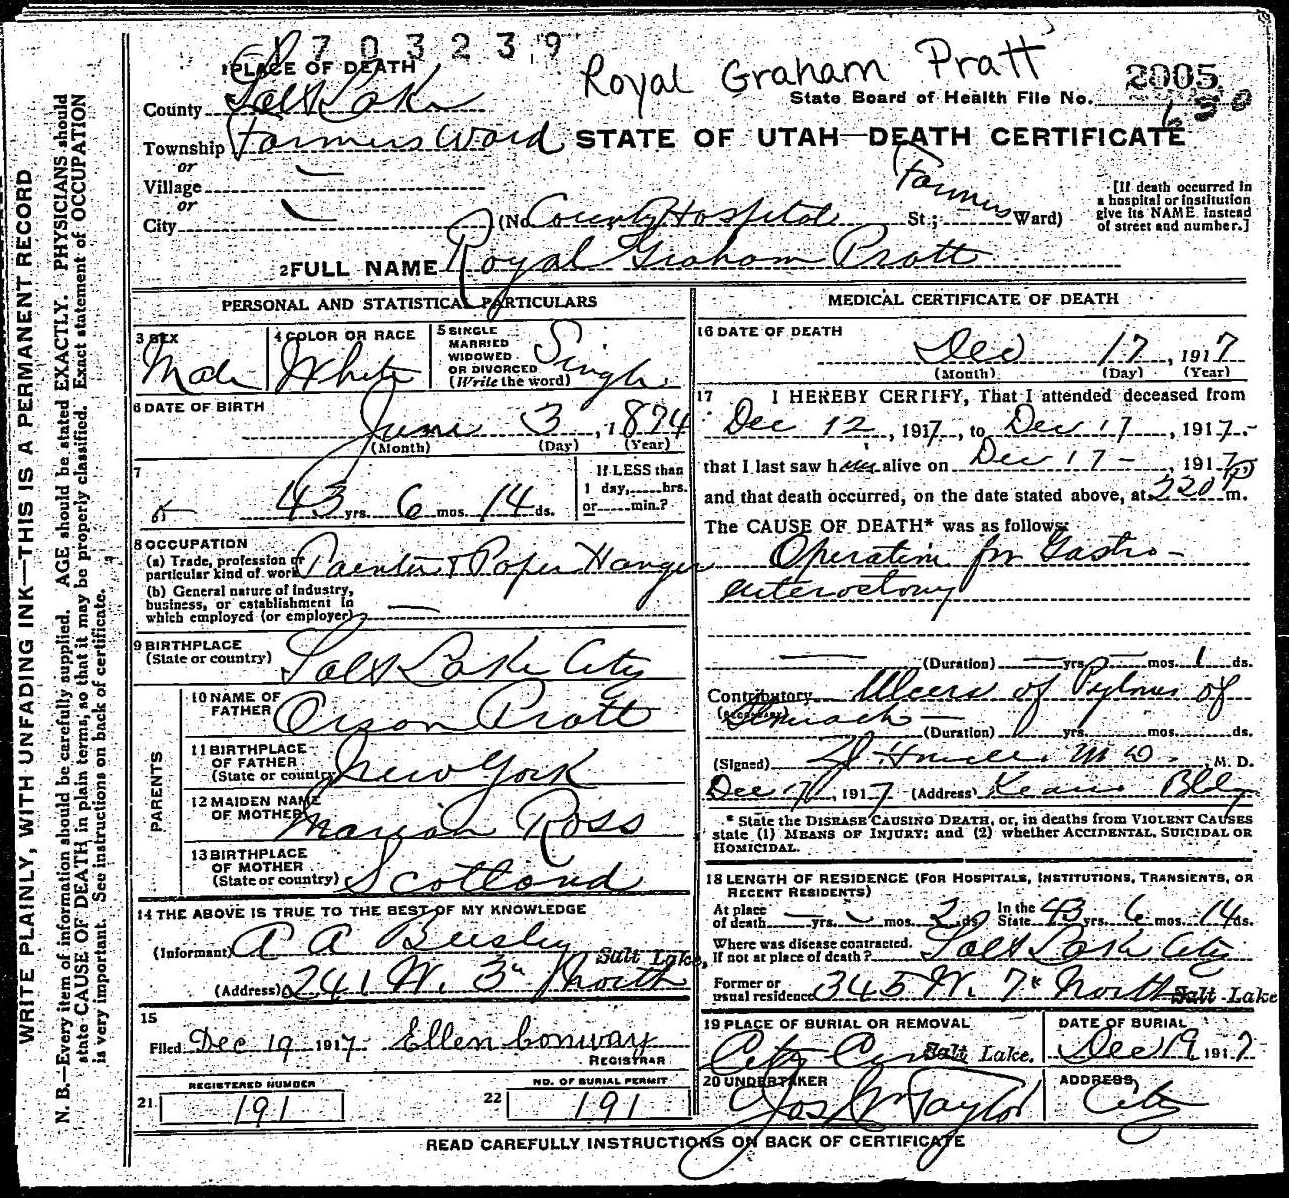 Royal graham pratt death certificate death certificate of royal graham pratt 1betcityfo Choice Image